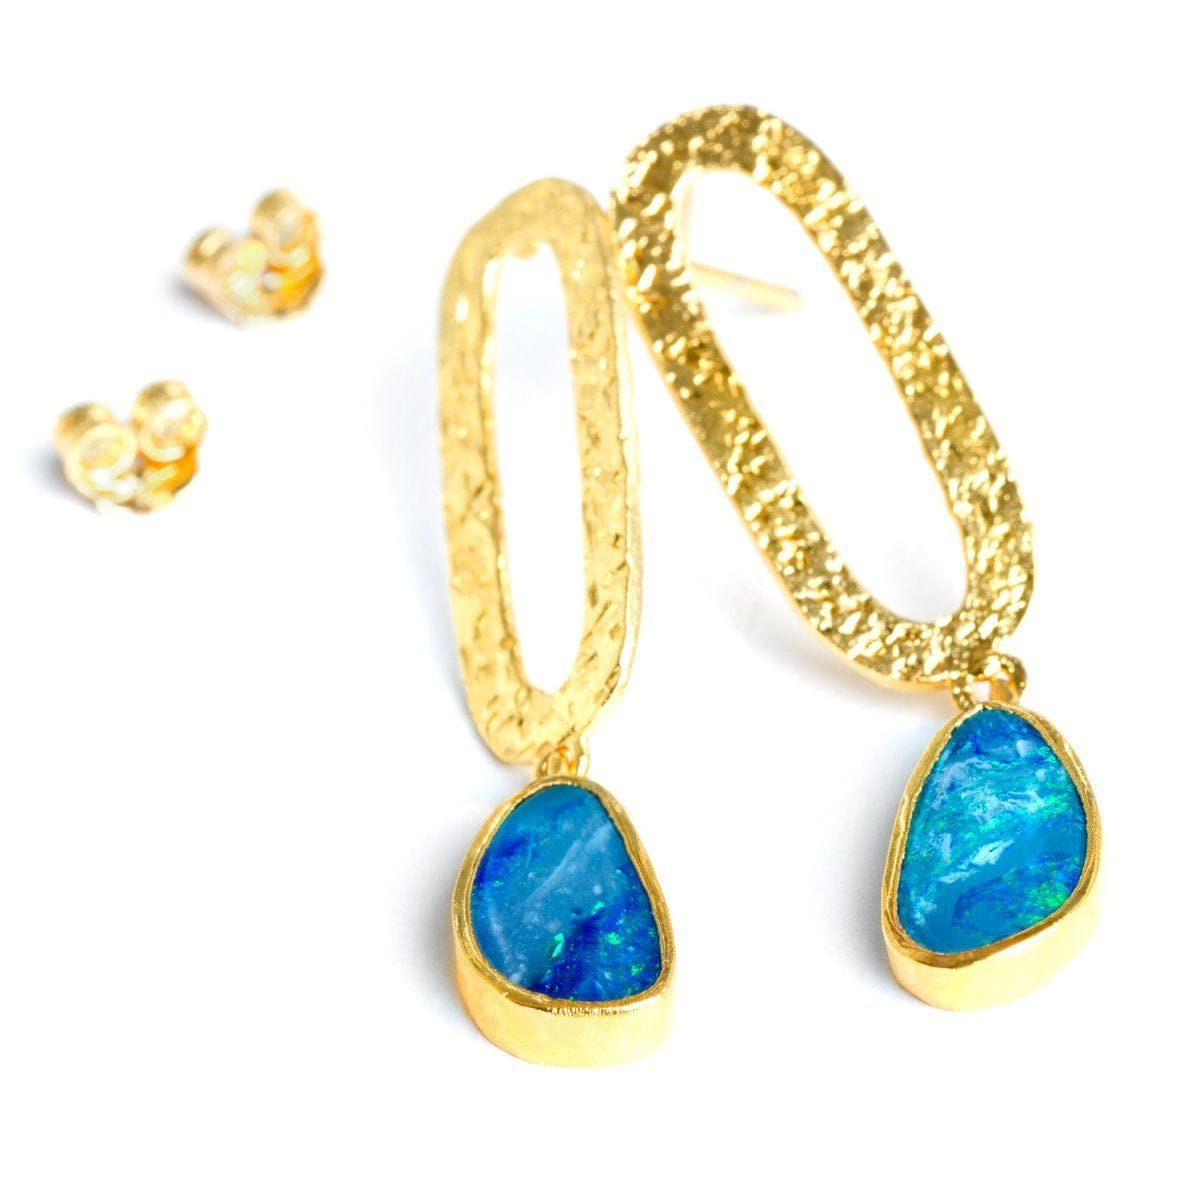 Legend 22k Gold Plated with Opal Earrings - G8012E-OPL-Nina Nguyen-Renee Taylor Gallery